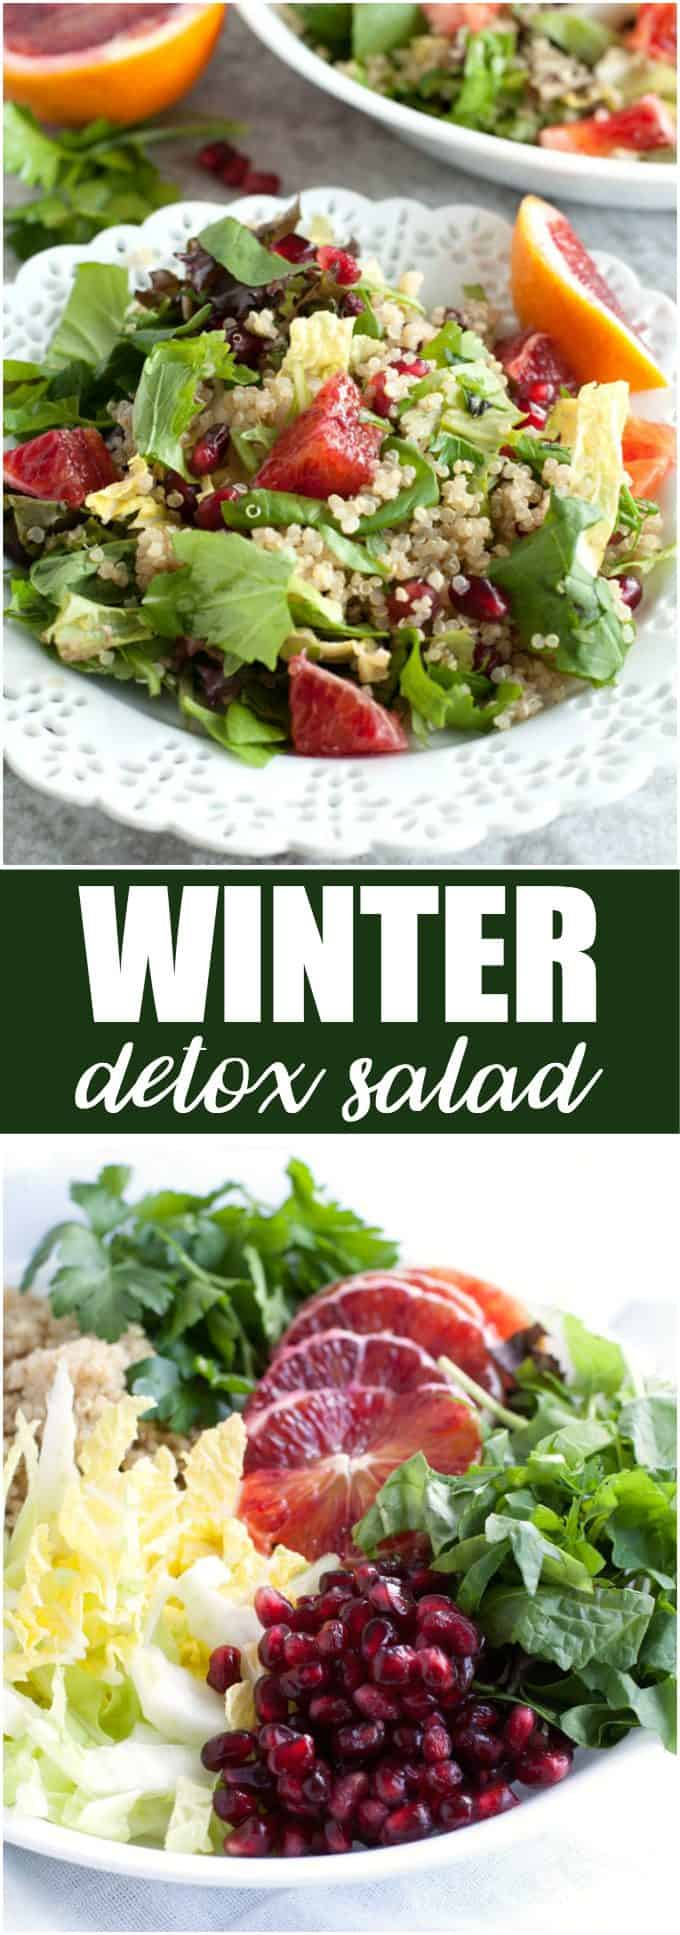 Winter Detox Salad - A bright, fresh winter salad packed with color, texture and nutrients! It's a satisfying meal on its own or as a side dish.